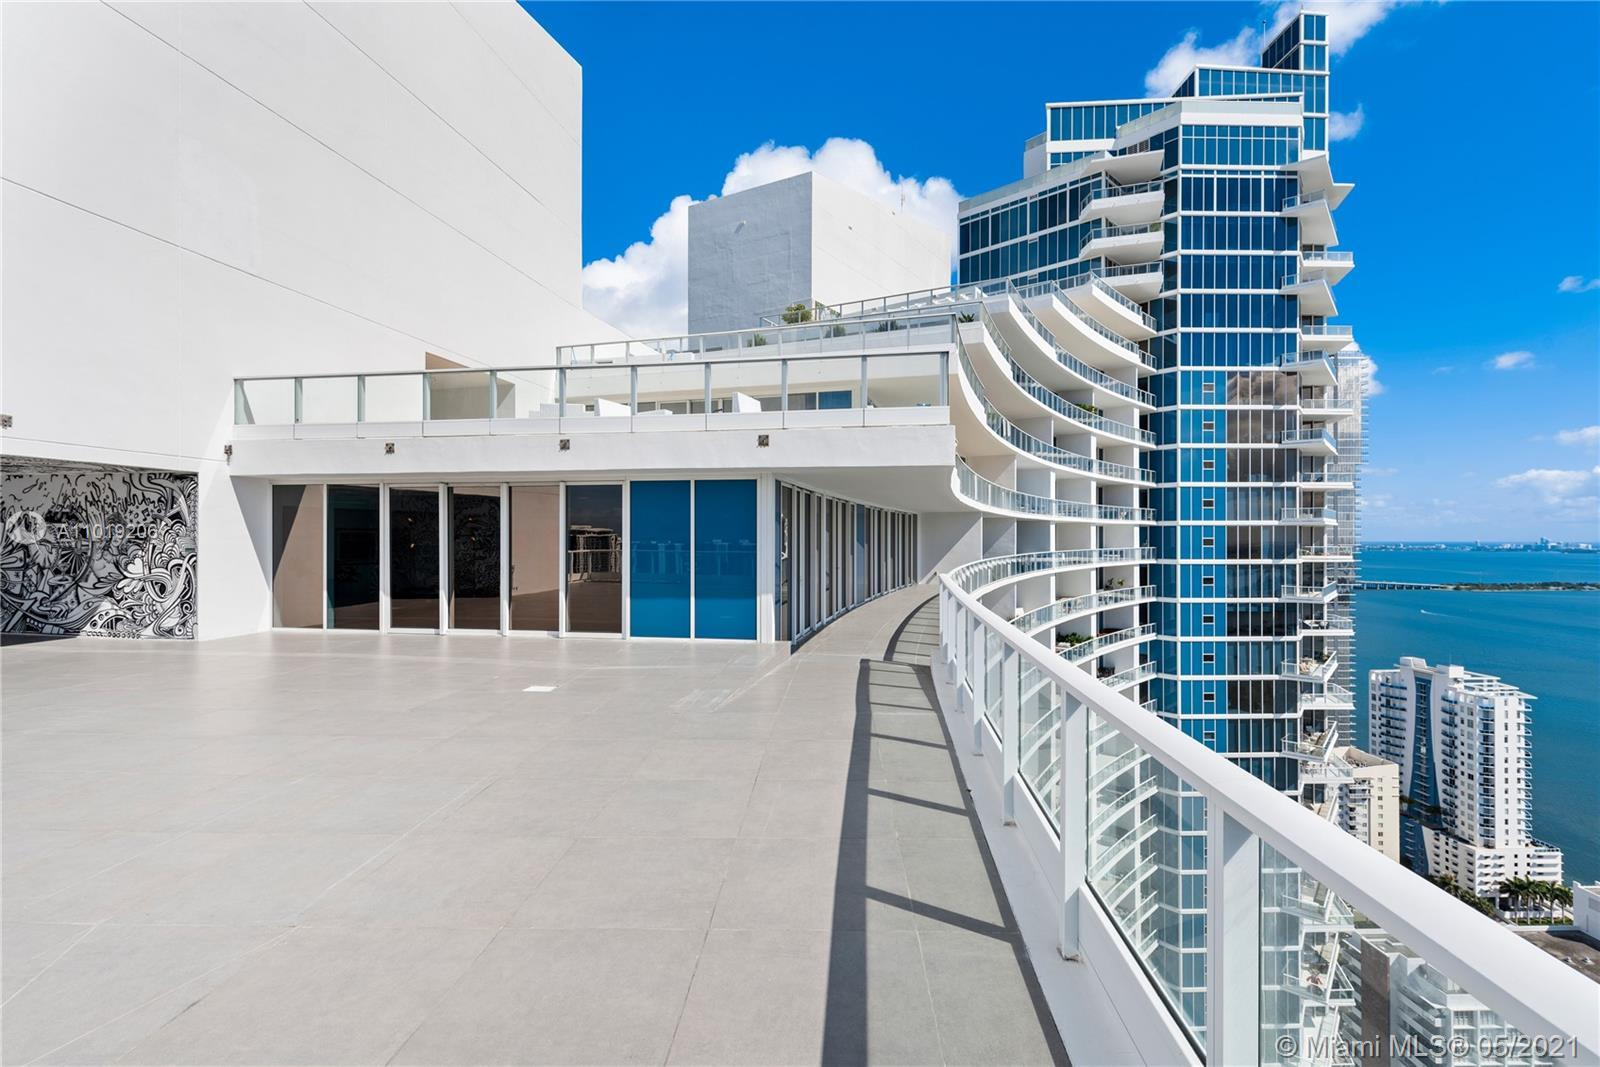 RARELY AVAILABLE 4BR, 4.5BA PENTHOUSE W. AMAZING PANORAMIC VIEWS OF THE OCEAN, BAY & DOWNTOWN MIAMI!